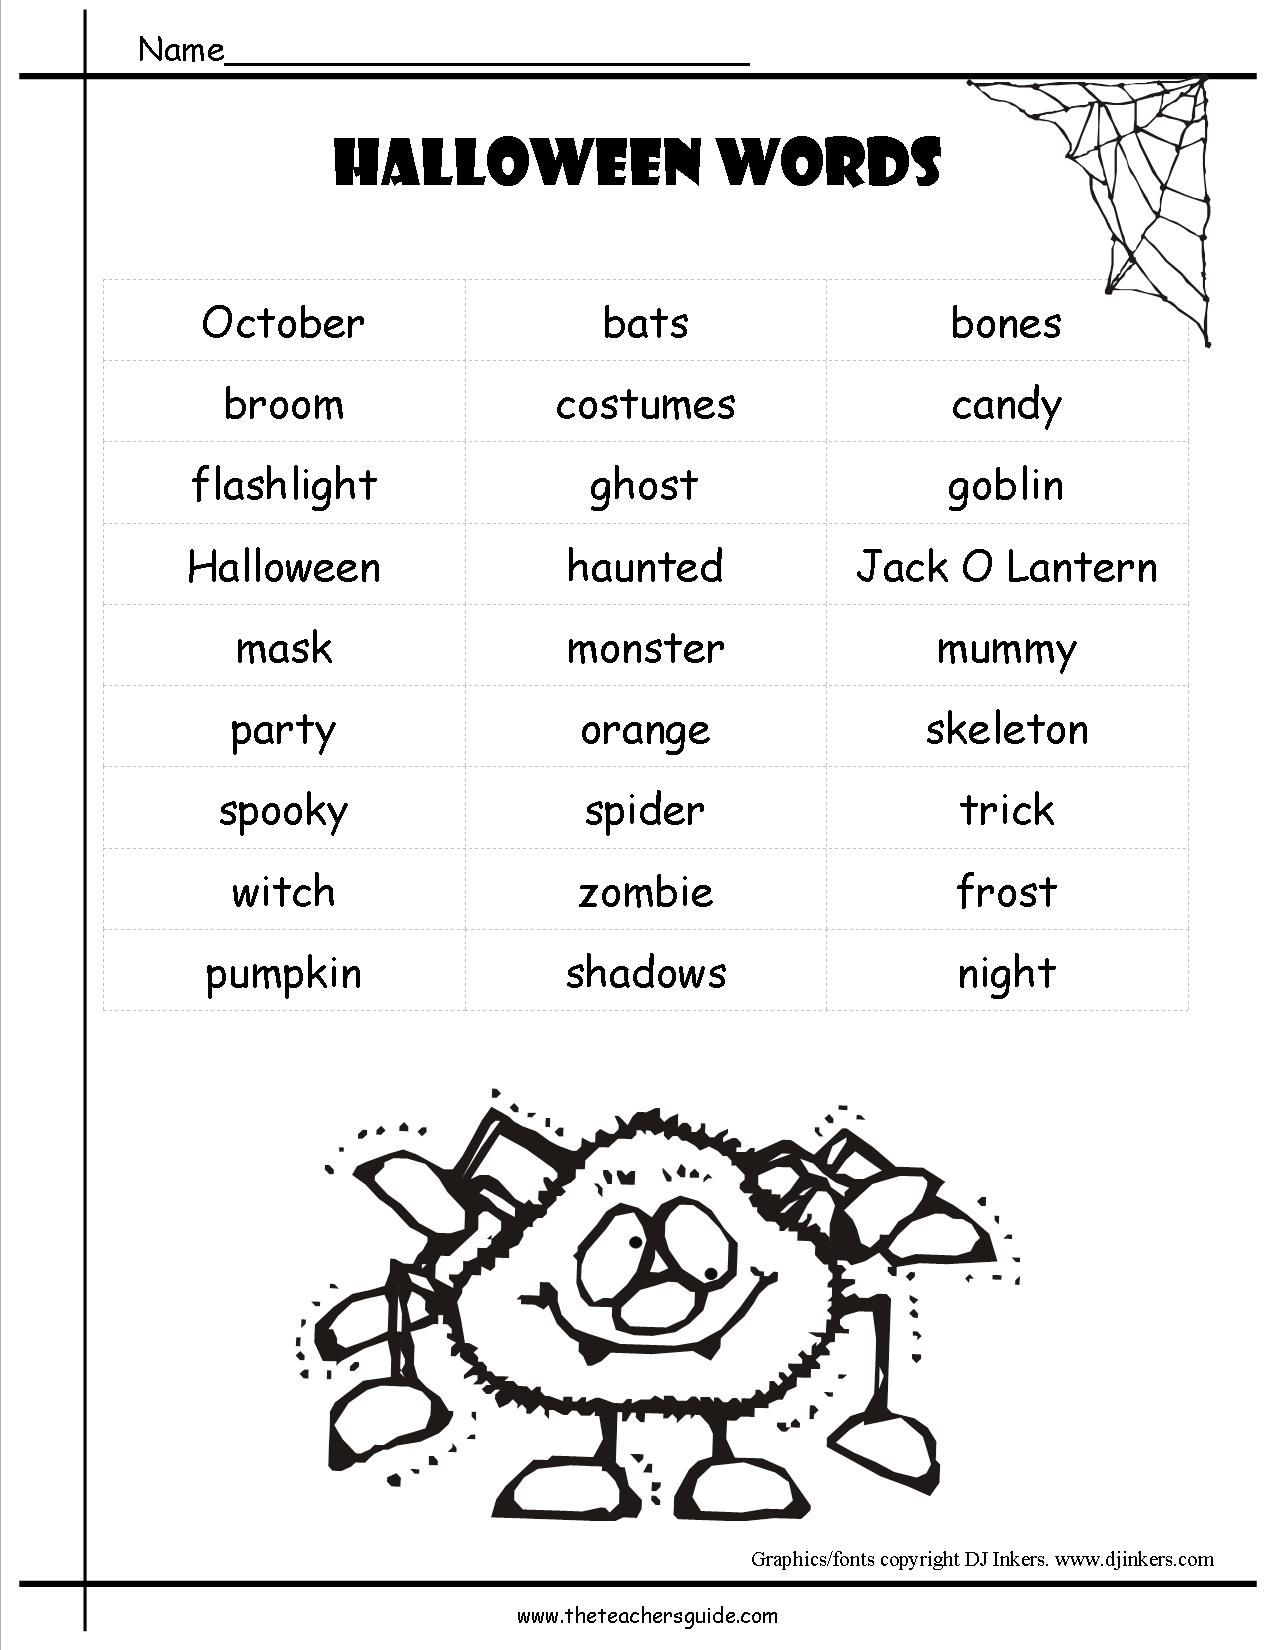 Halloween Printouts From The Teacher 39 S Guide Halloween Worksheets Kindergarten Worksheets Printable Halloween Reading Comprehension